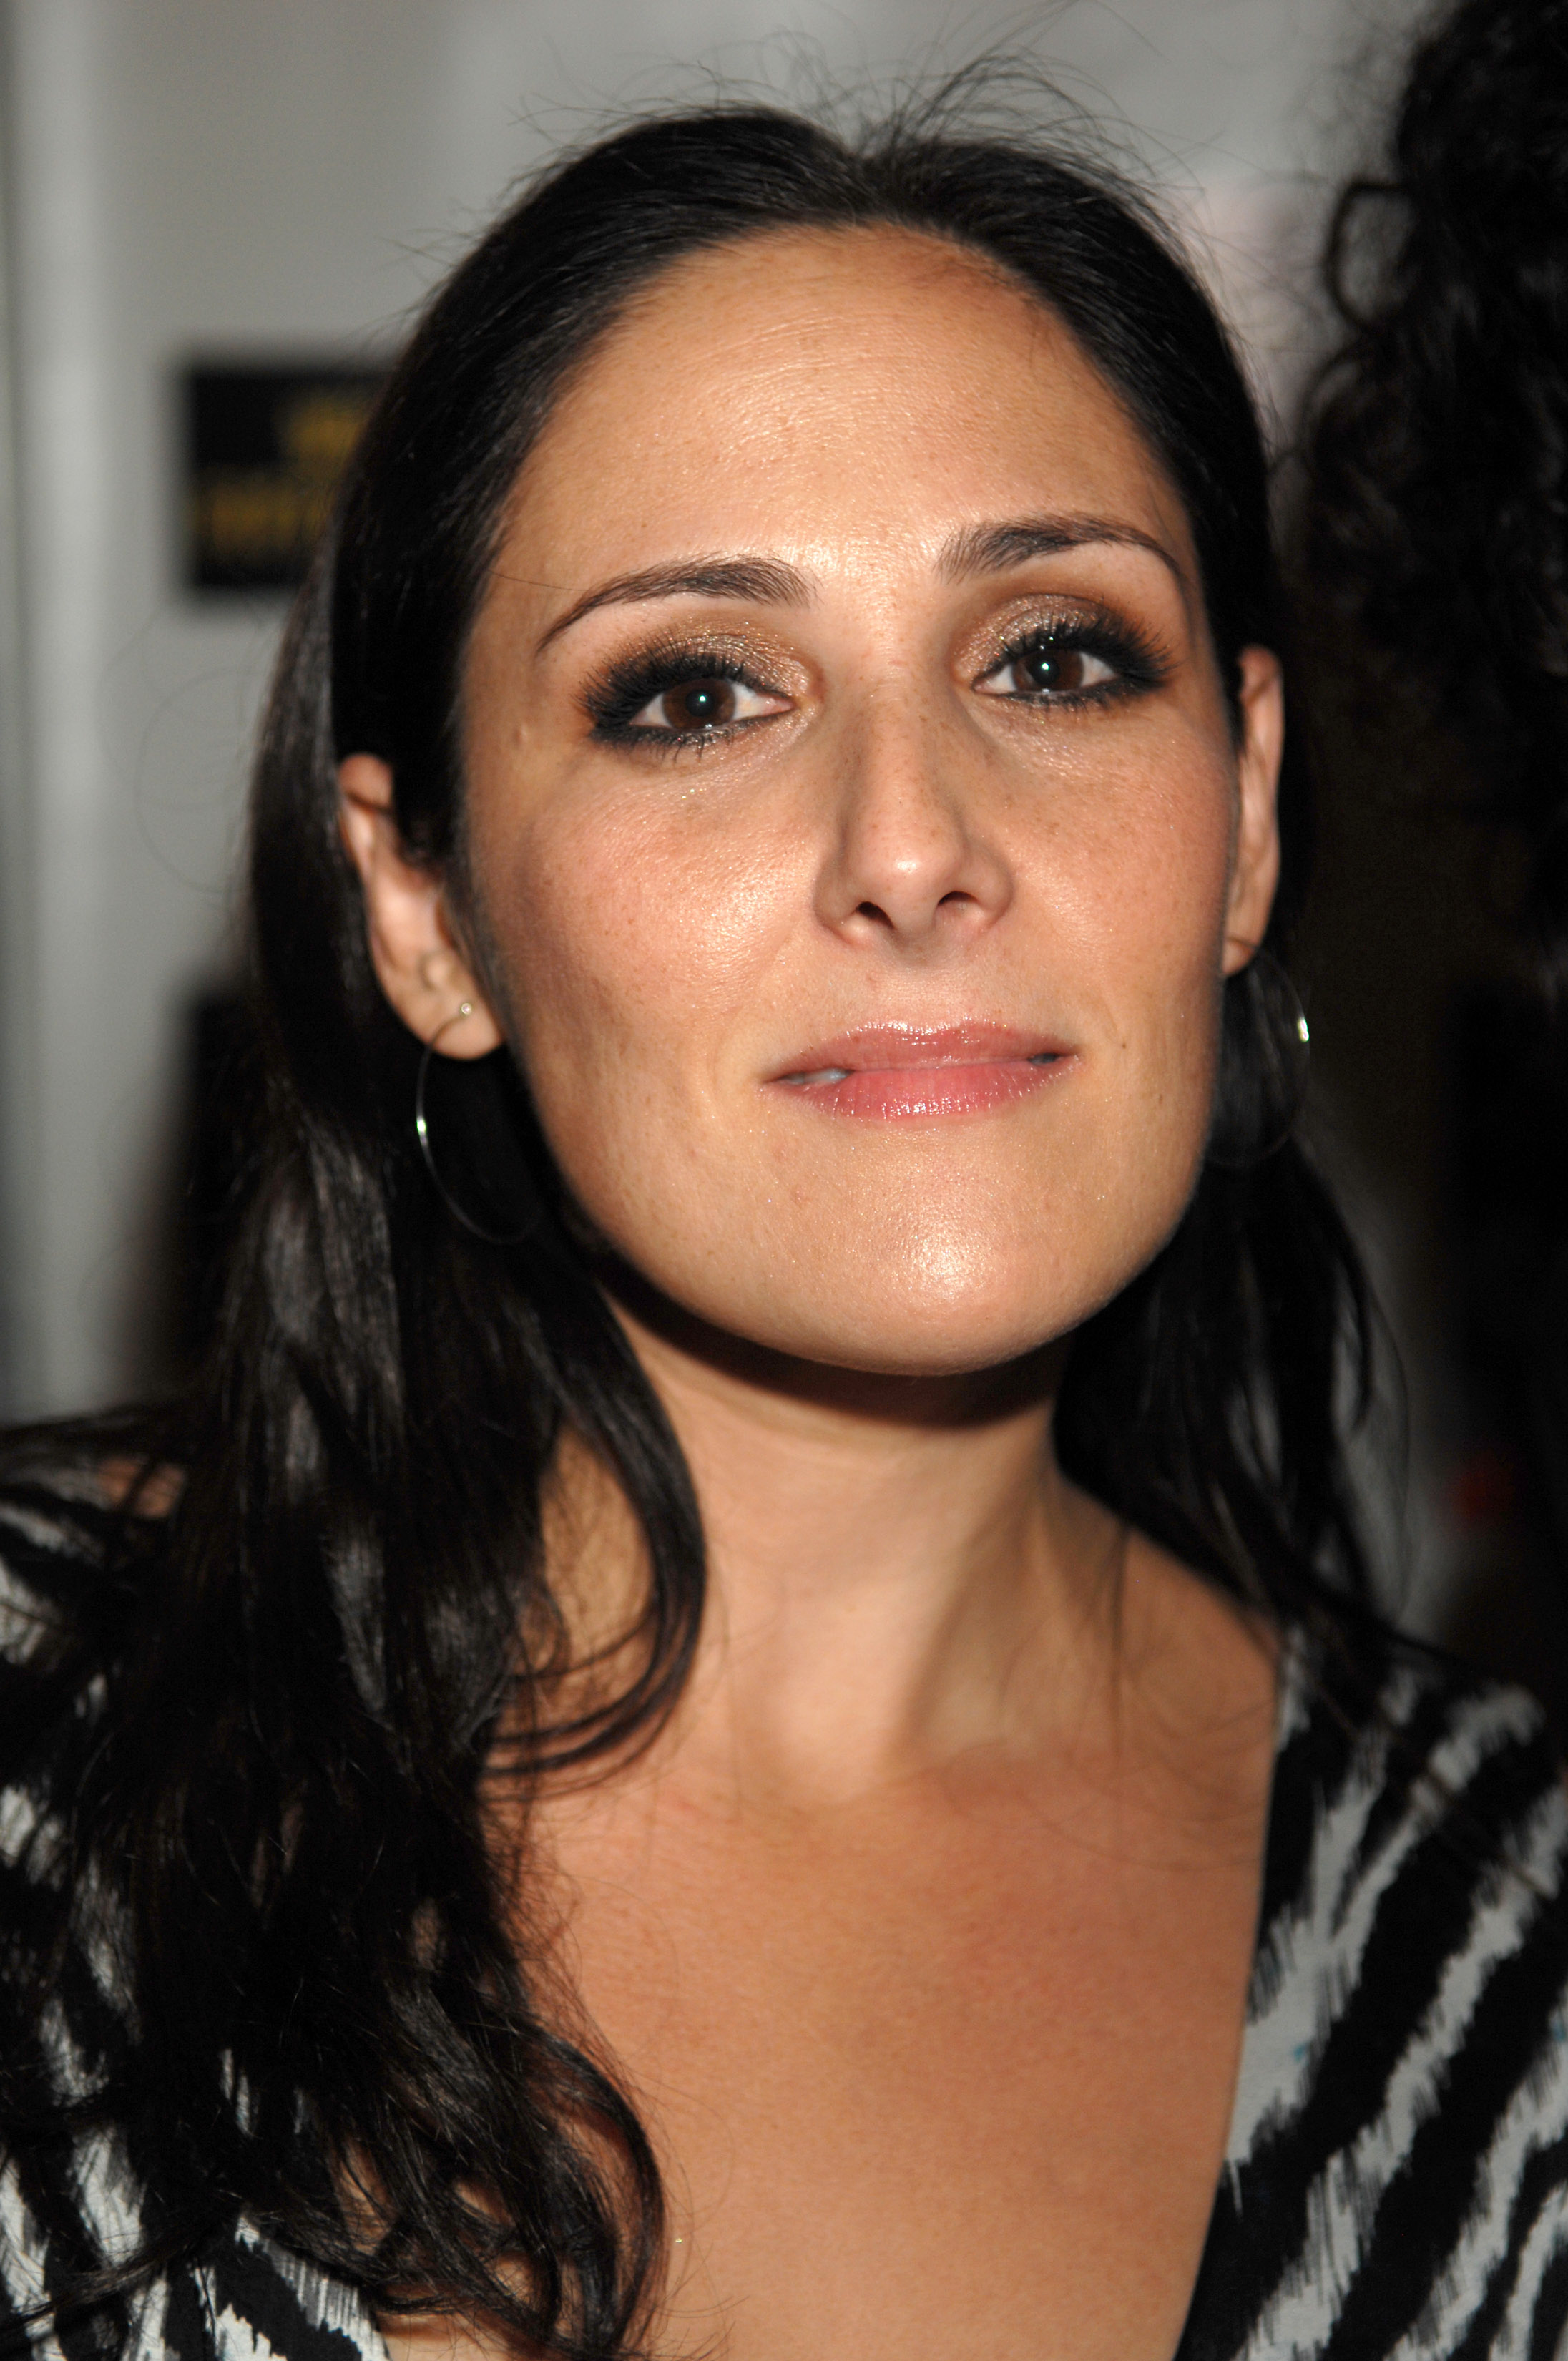 Ricki Lake Sexiest Female Talk Show Hosts TOP 10 Page 3 of 10